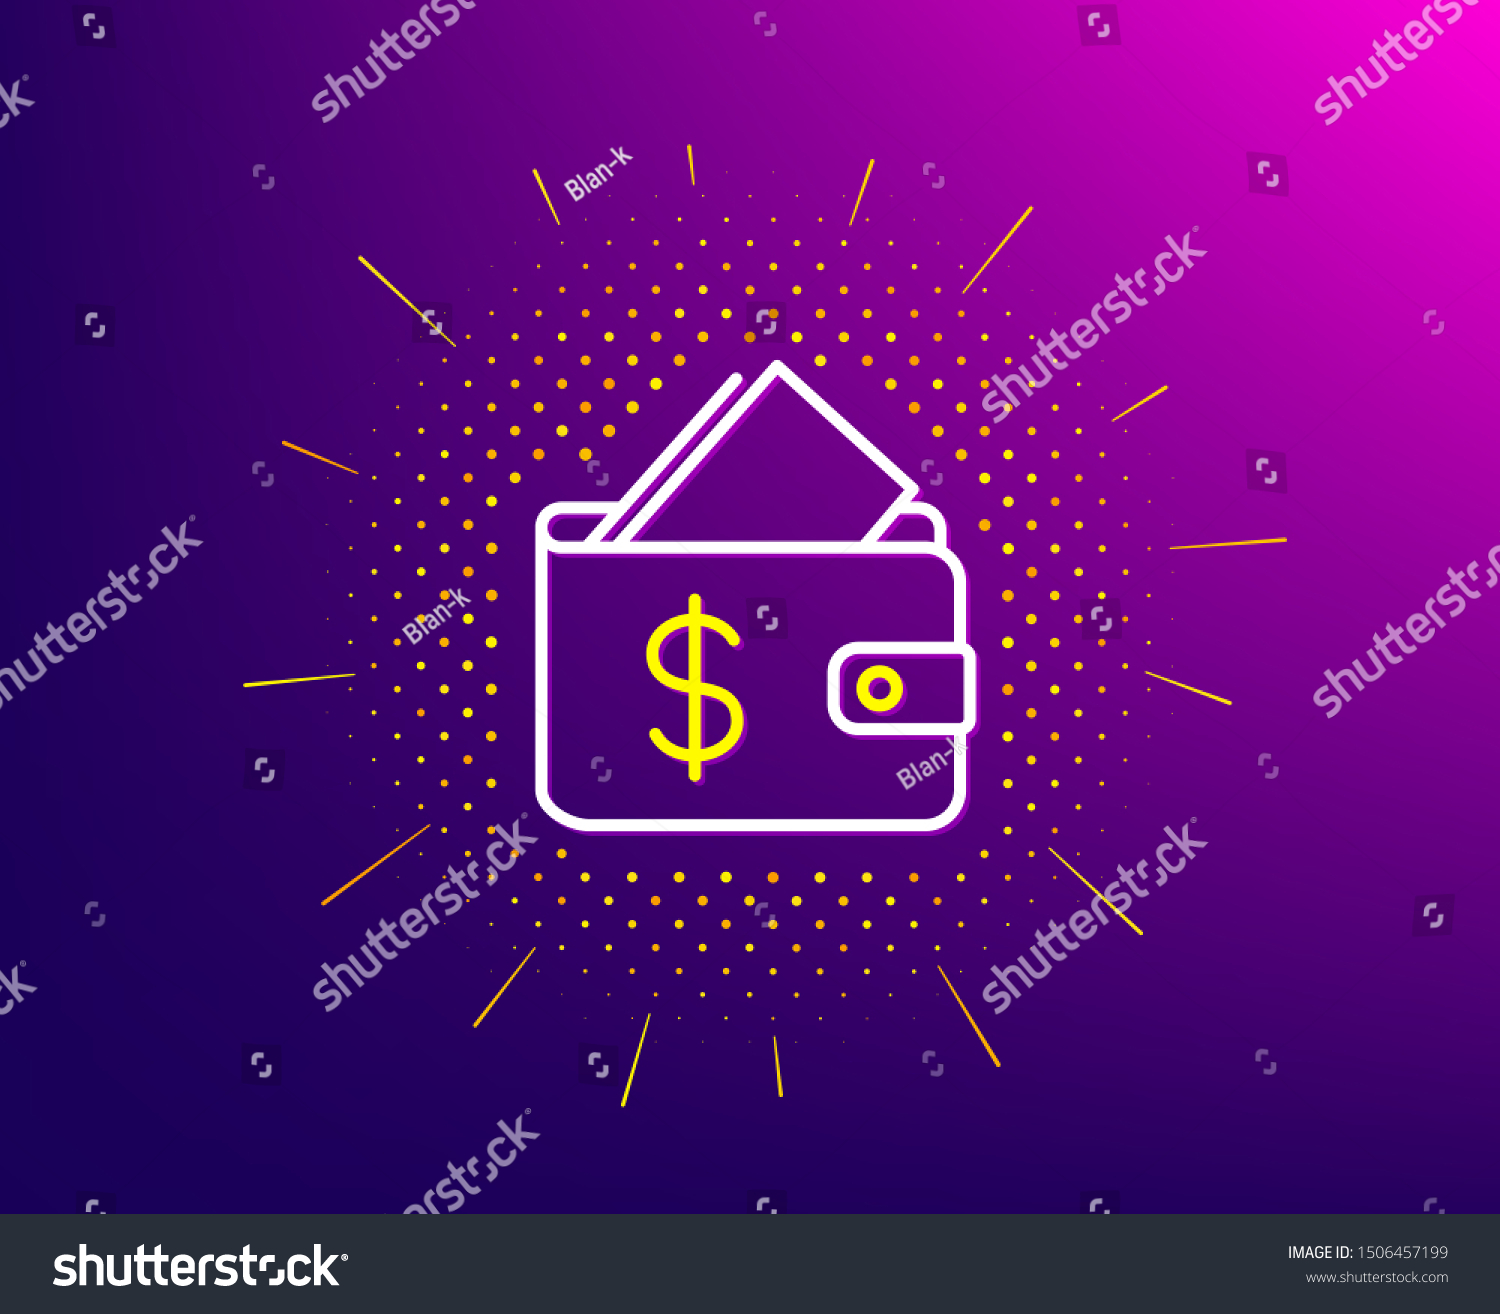 wallet line icon halftone pattern affordability stock vector royalty free 1506457199 https www shutterstock com image vector wallet line icon halftone pattern affordability 1506457199